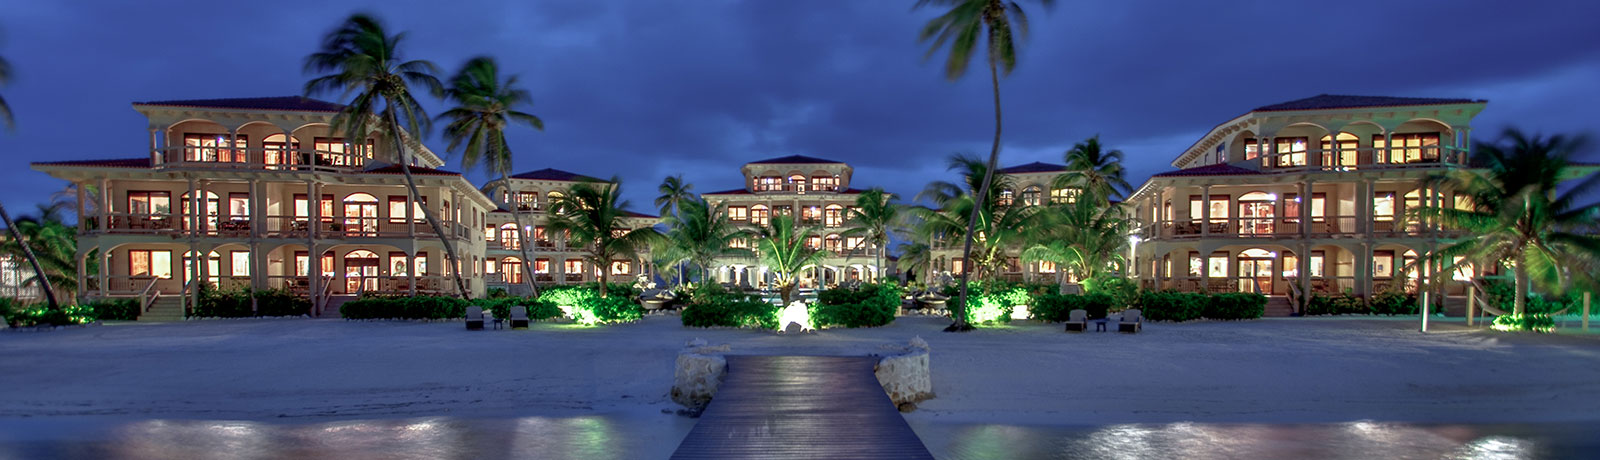 Coco Beach Resort Ambergris Caye